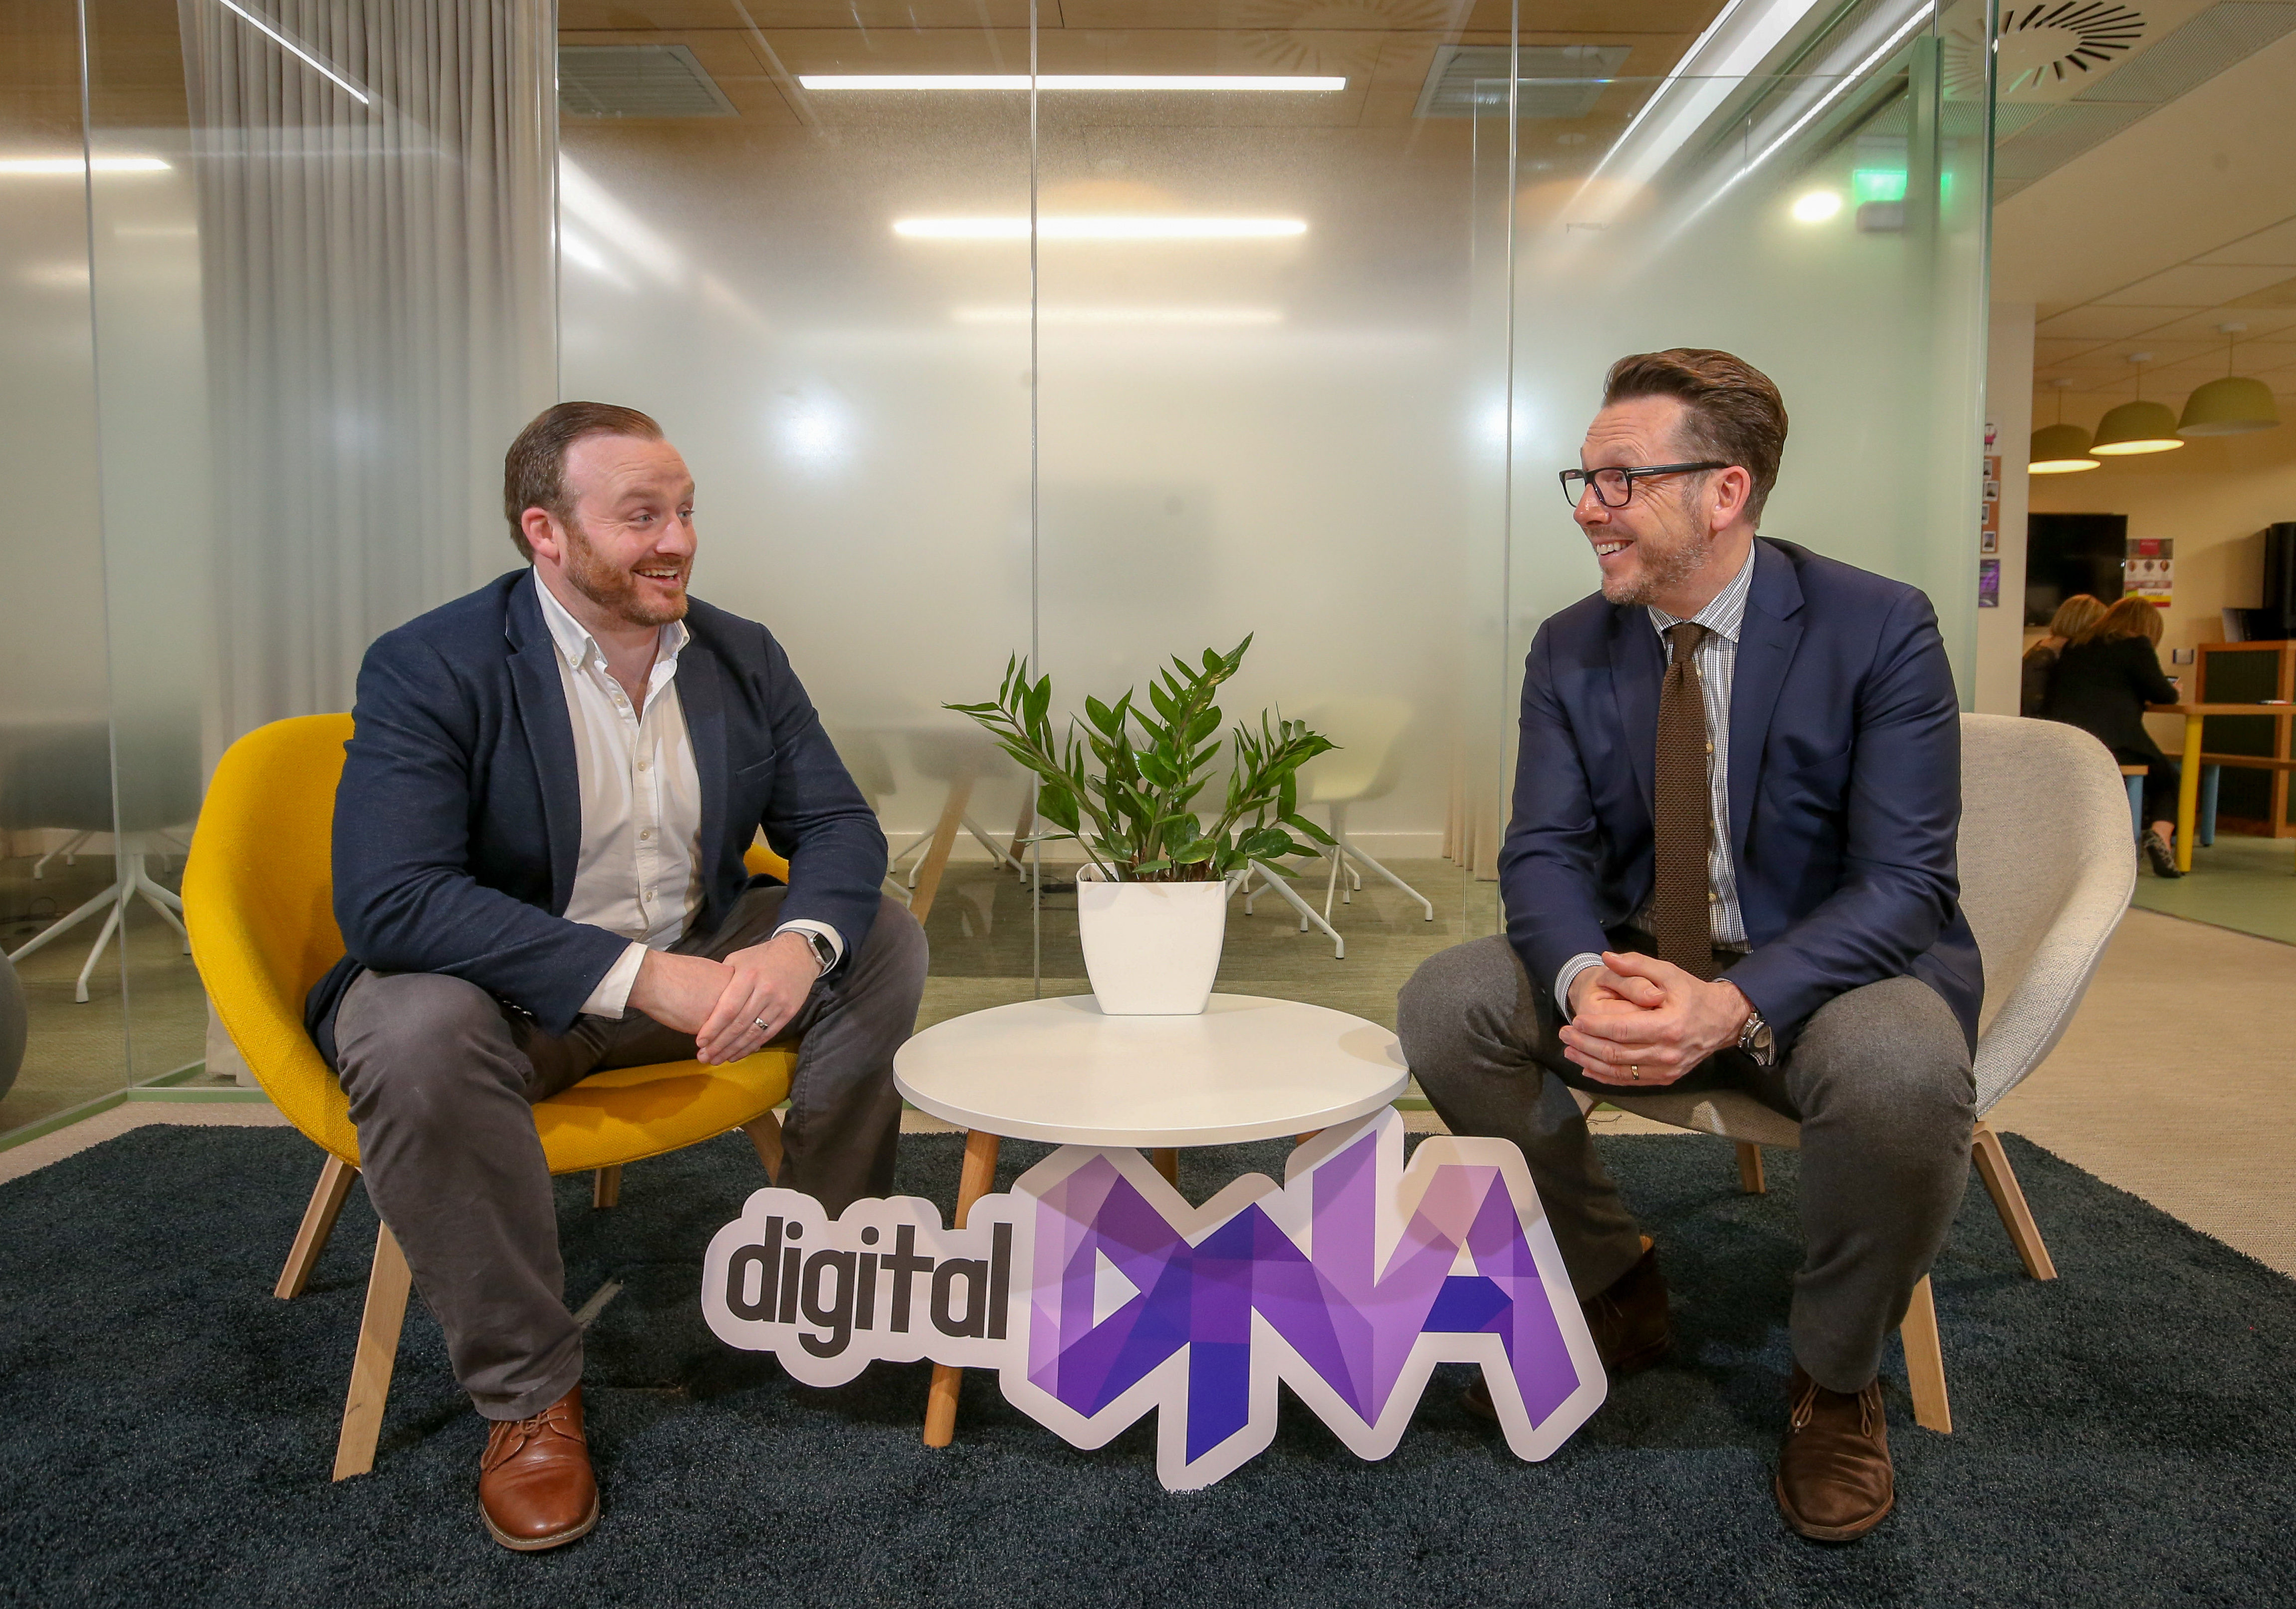 Two men in suits sit opposite each other at a coffee table, looking at each other and laughing. a purple 'DIgital DNA' sign sits in front of them.